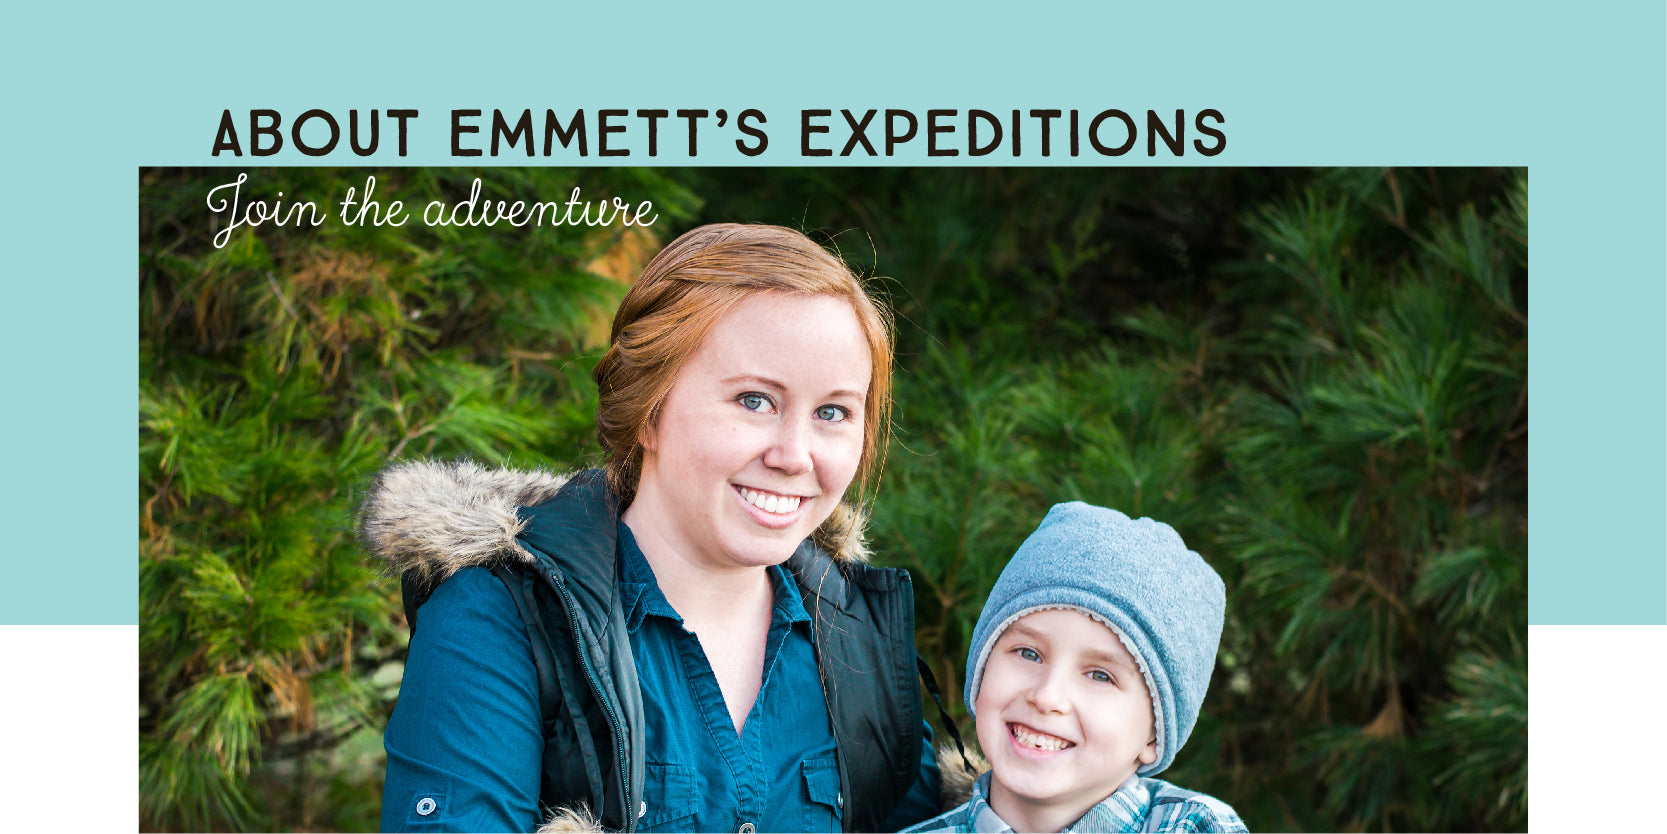 About Emmett's Expeditions